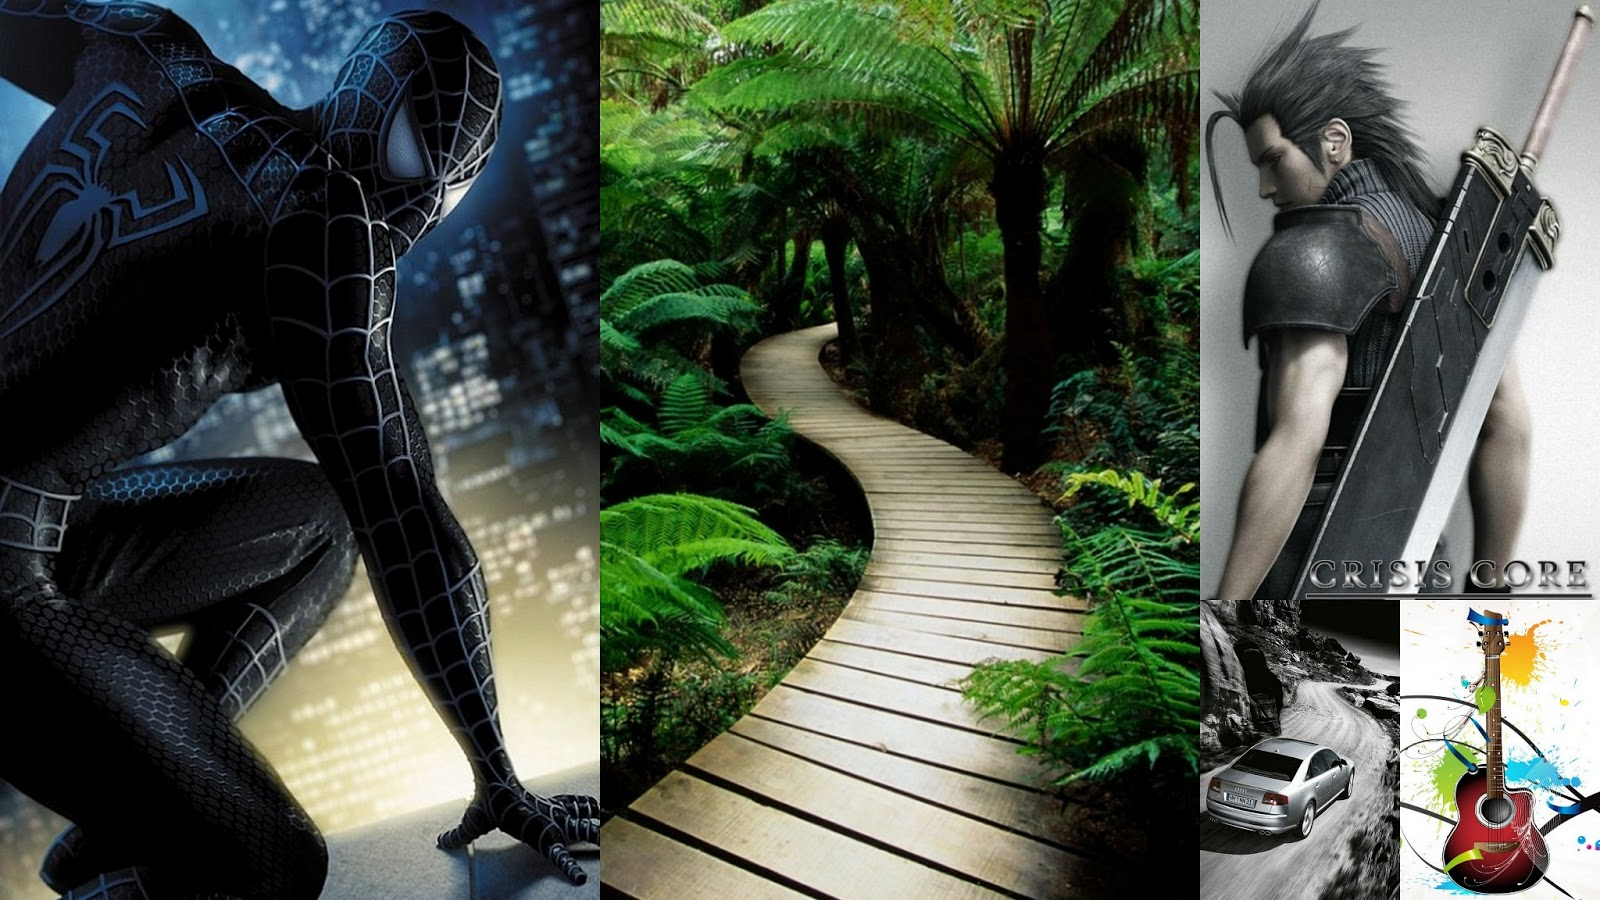 Download 480x800 Mixed HD Wallpapers Pack 1600x900